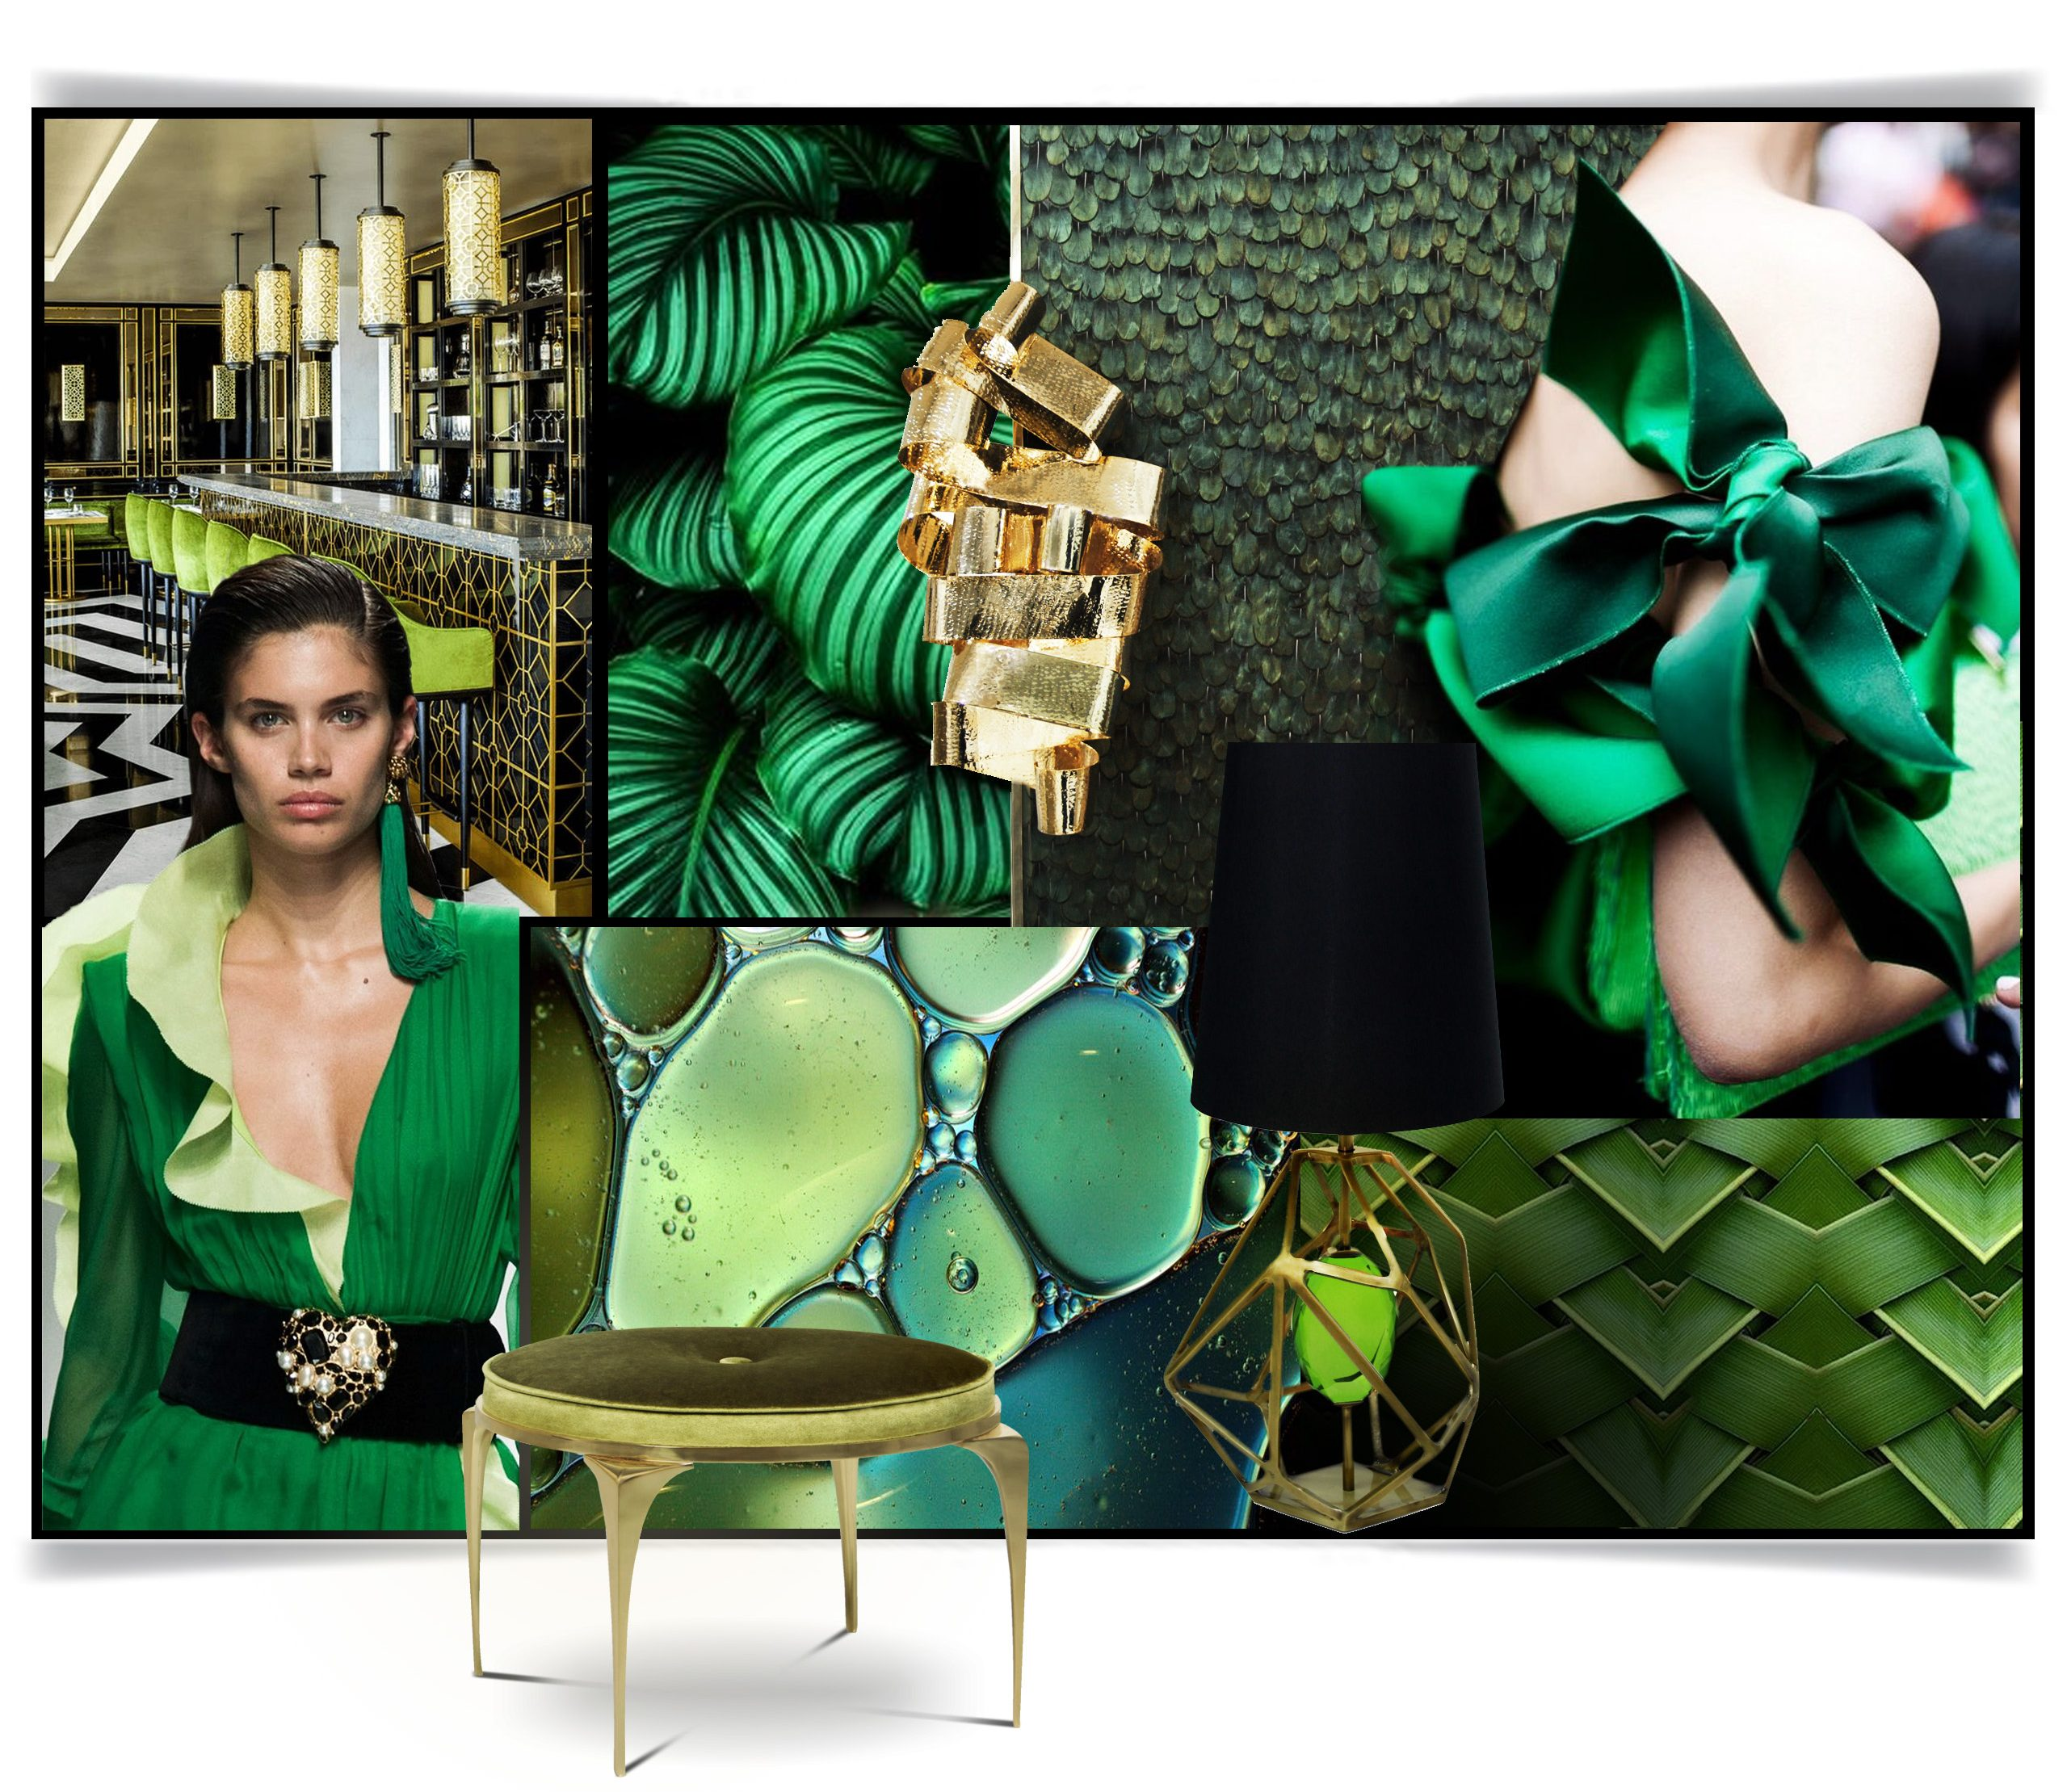 KOKET Moodboard pantone color of the year 2017 Pantone Color of the Year 2017: Greenery Pantone Color of the Year 2017 Greenery11 e1482752042199